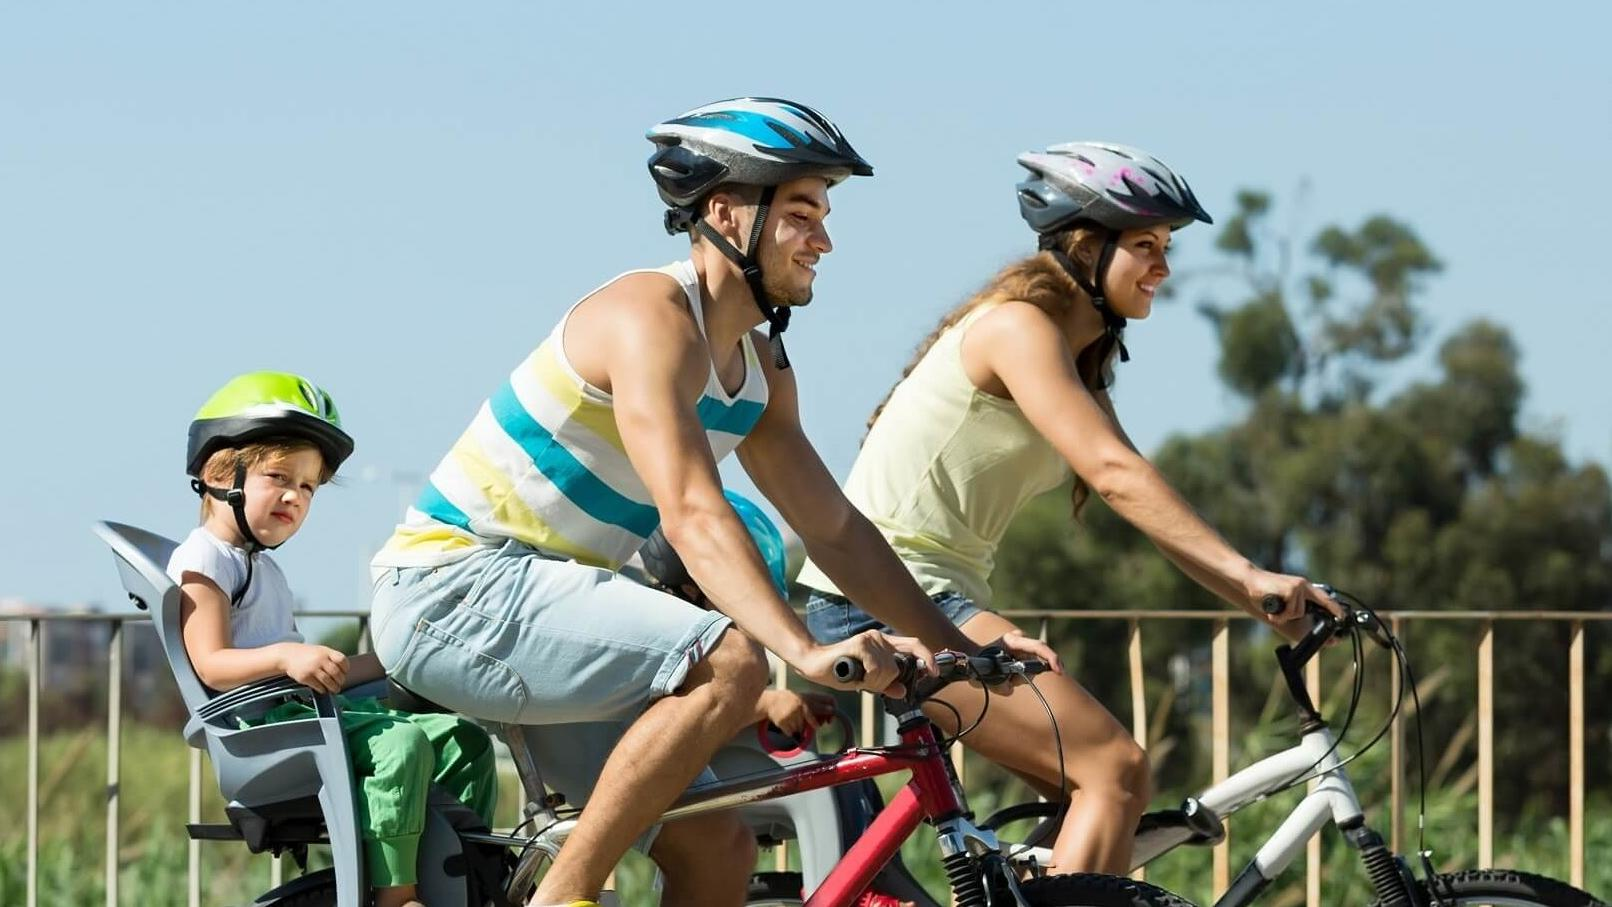 How To Ride A Bike In Animal Crossing : Cycling With Kids Carriers Attachments Rei Co Op / How ...